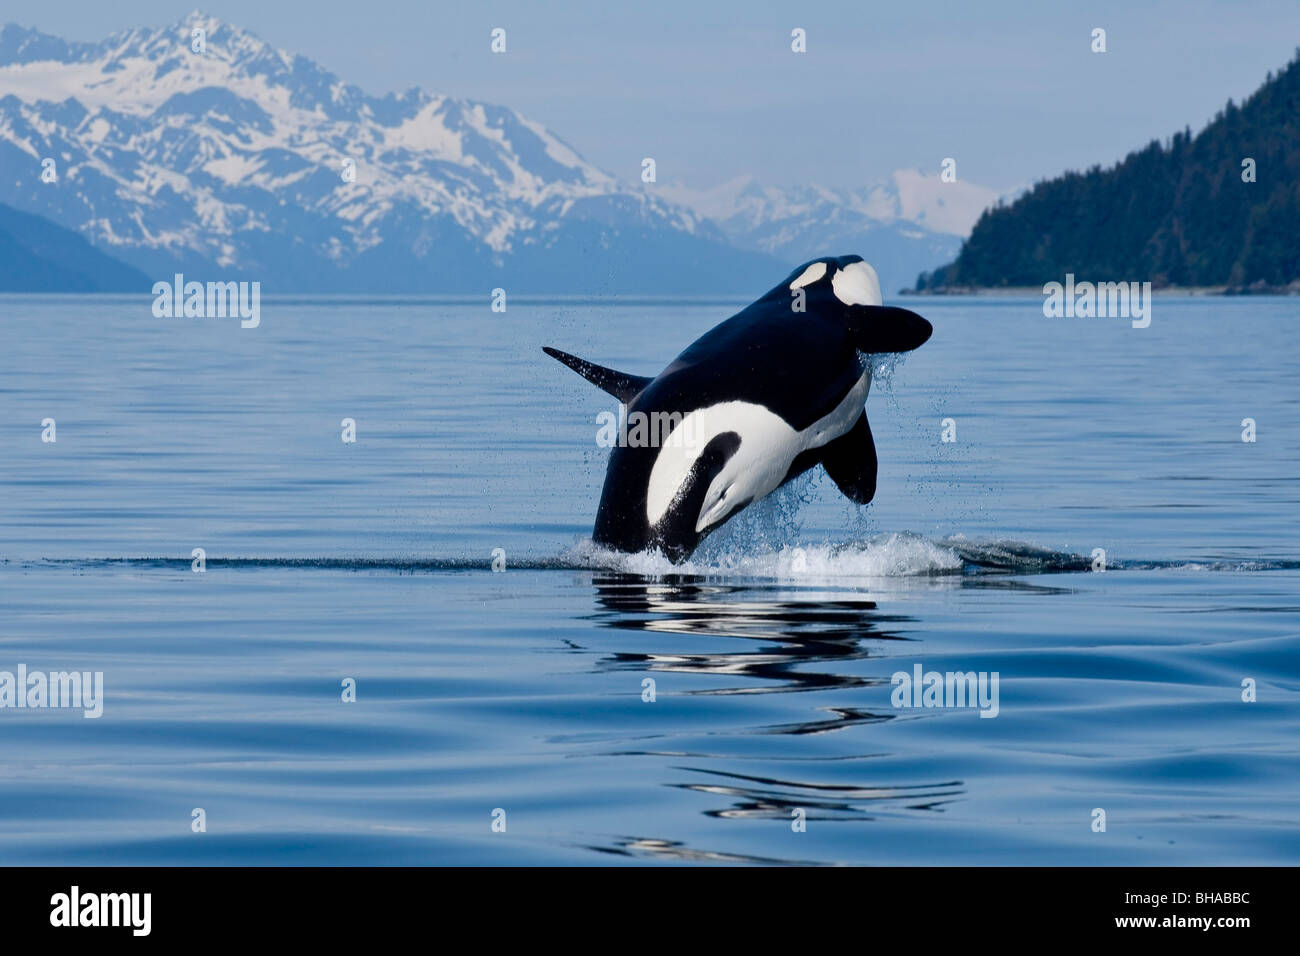 An adult Killer Whale leaps from the calm waters of Lynn Canal in Alaska's Inside Passage. - Stock Image